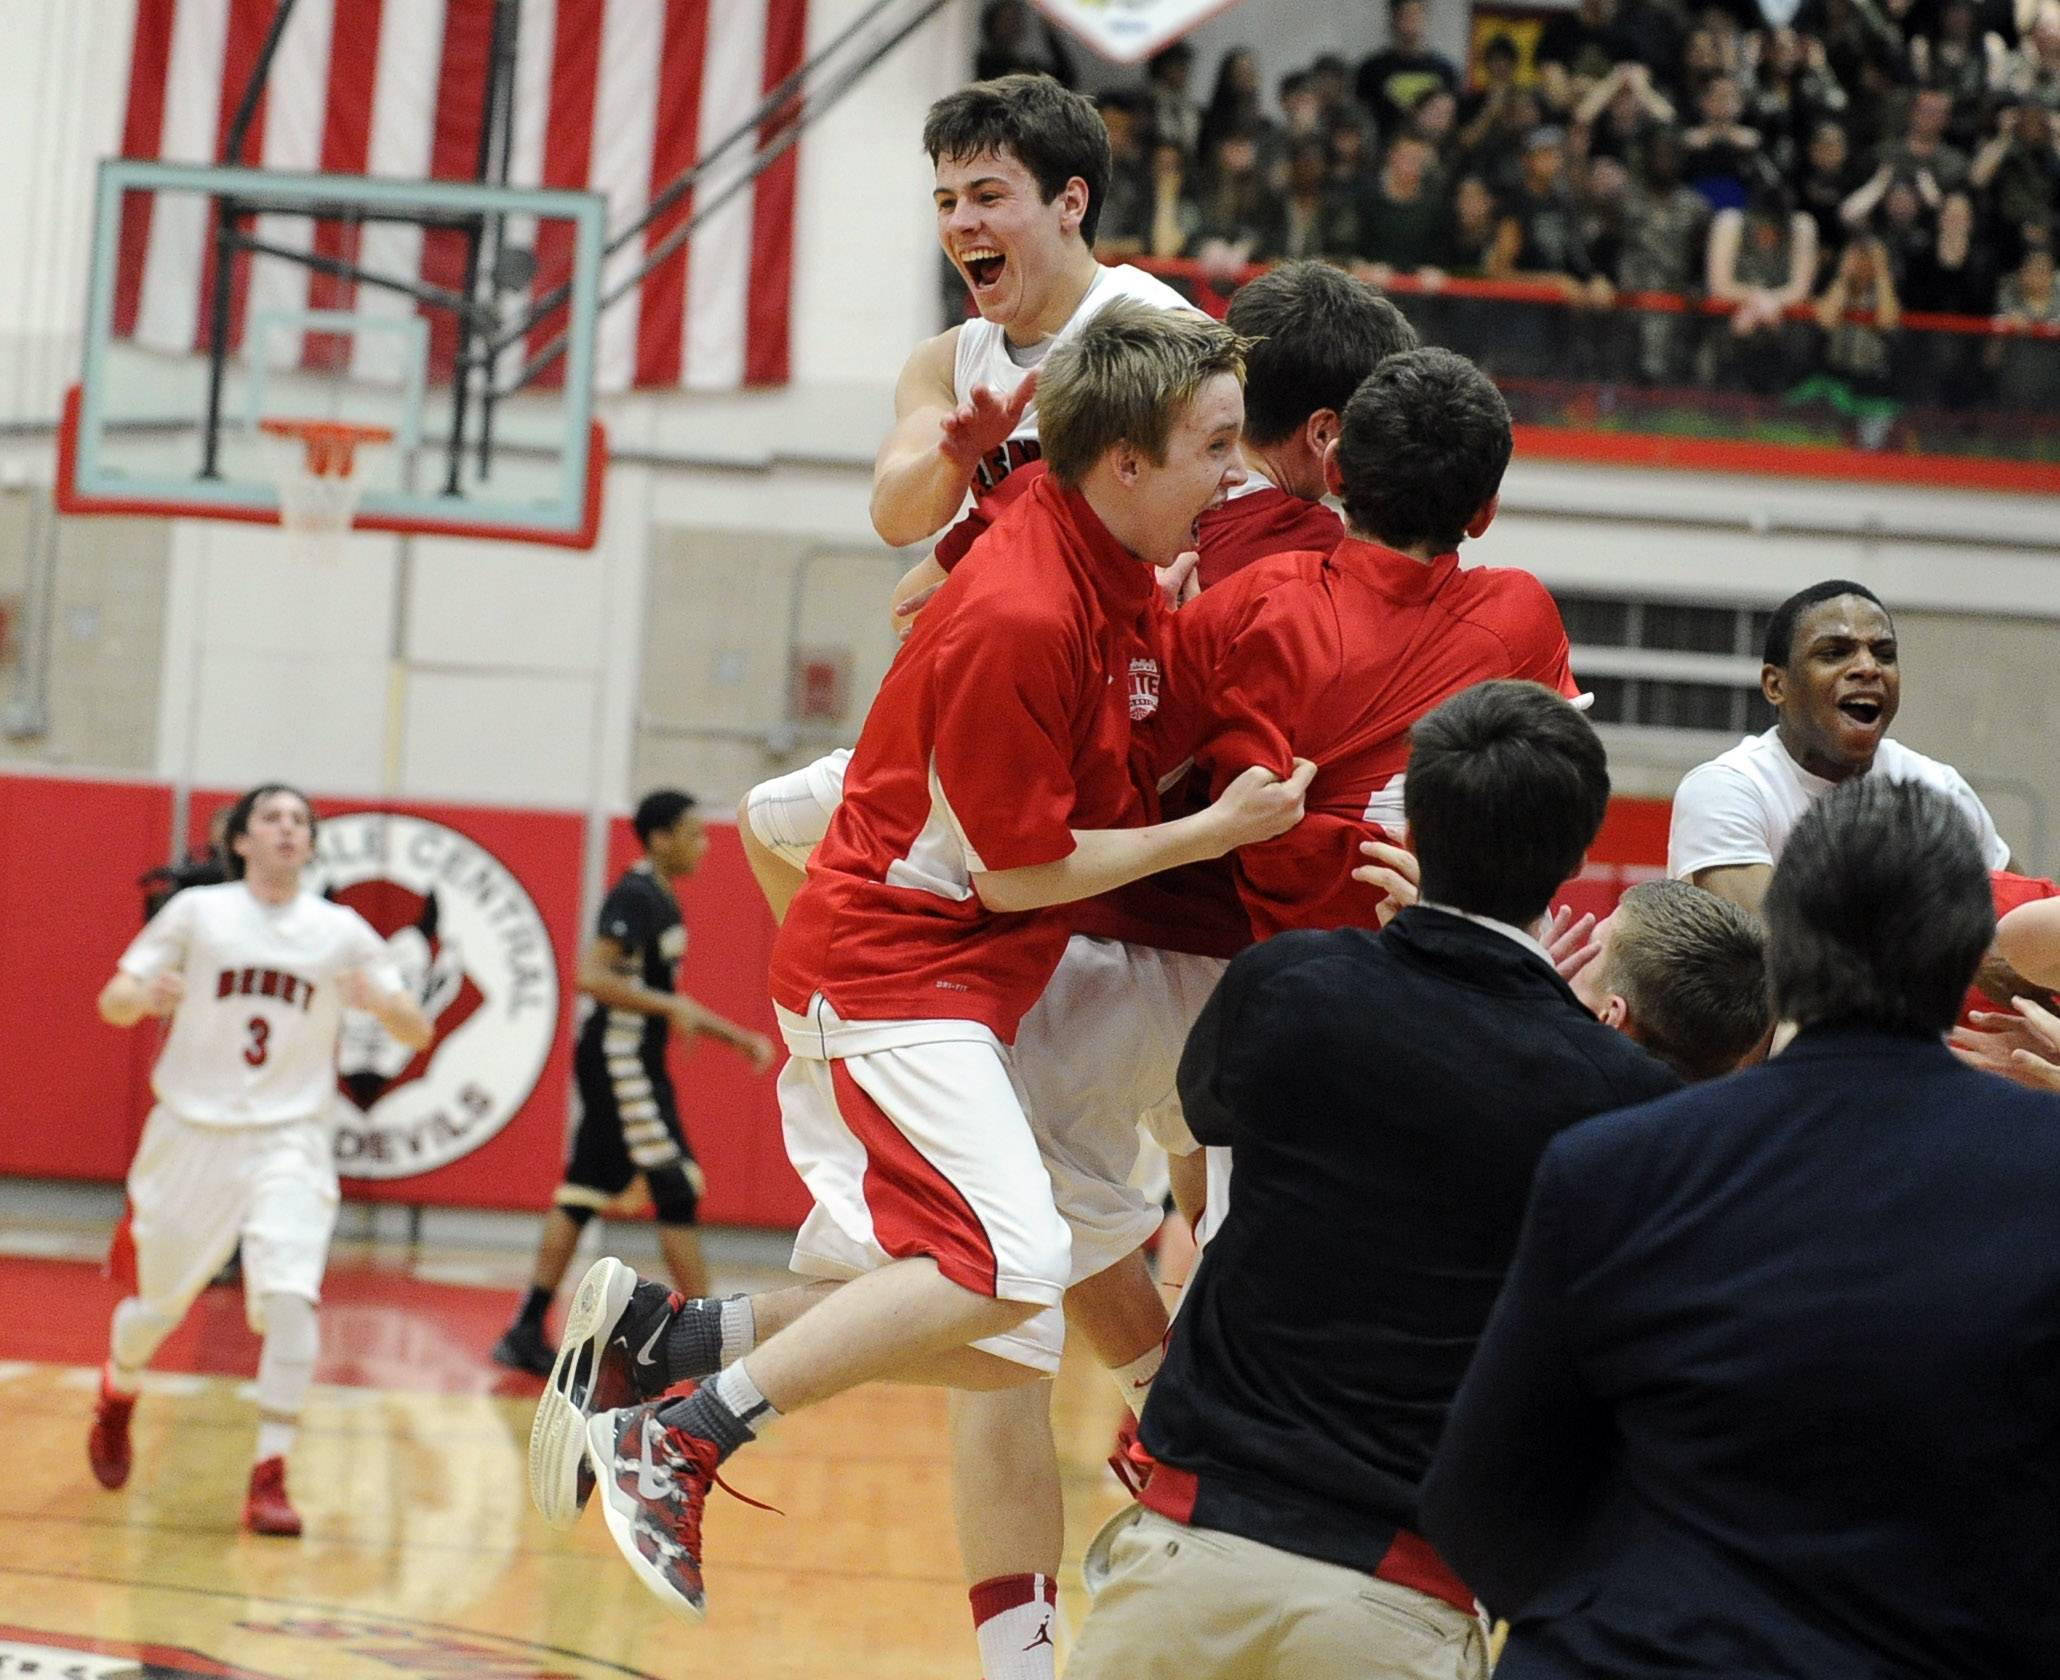 Benet's Liam Nelligan celebrates with his teammates after the Redwings beat Glenbard North in the Hinsdale Central supersectional on Tuesday.